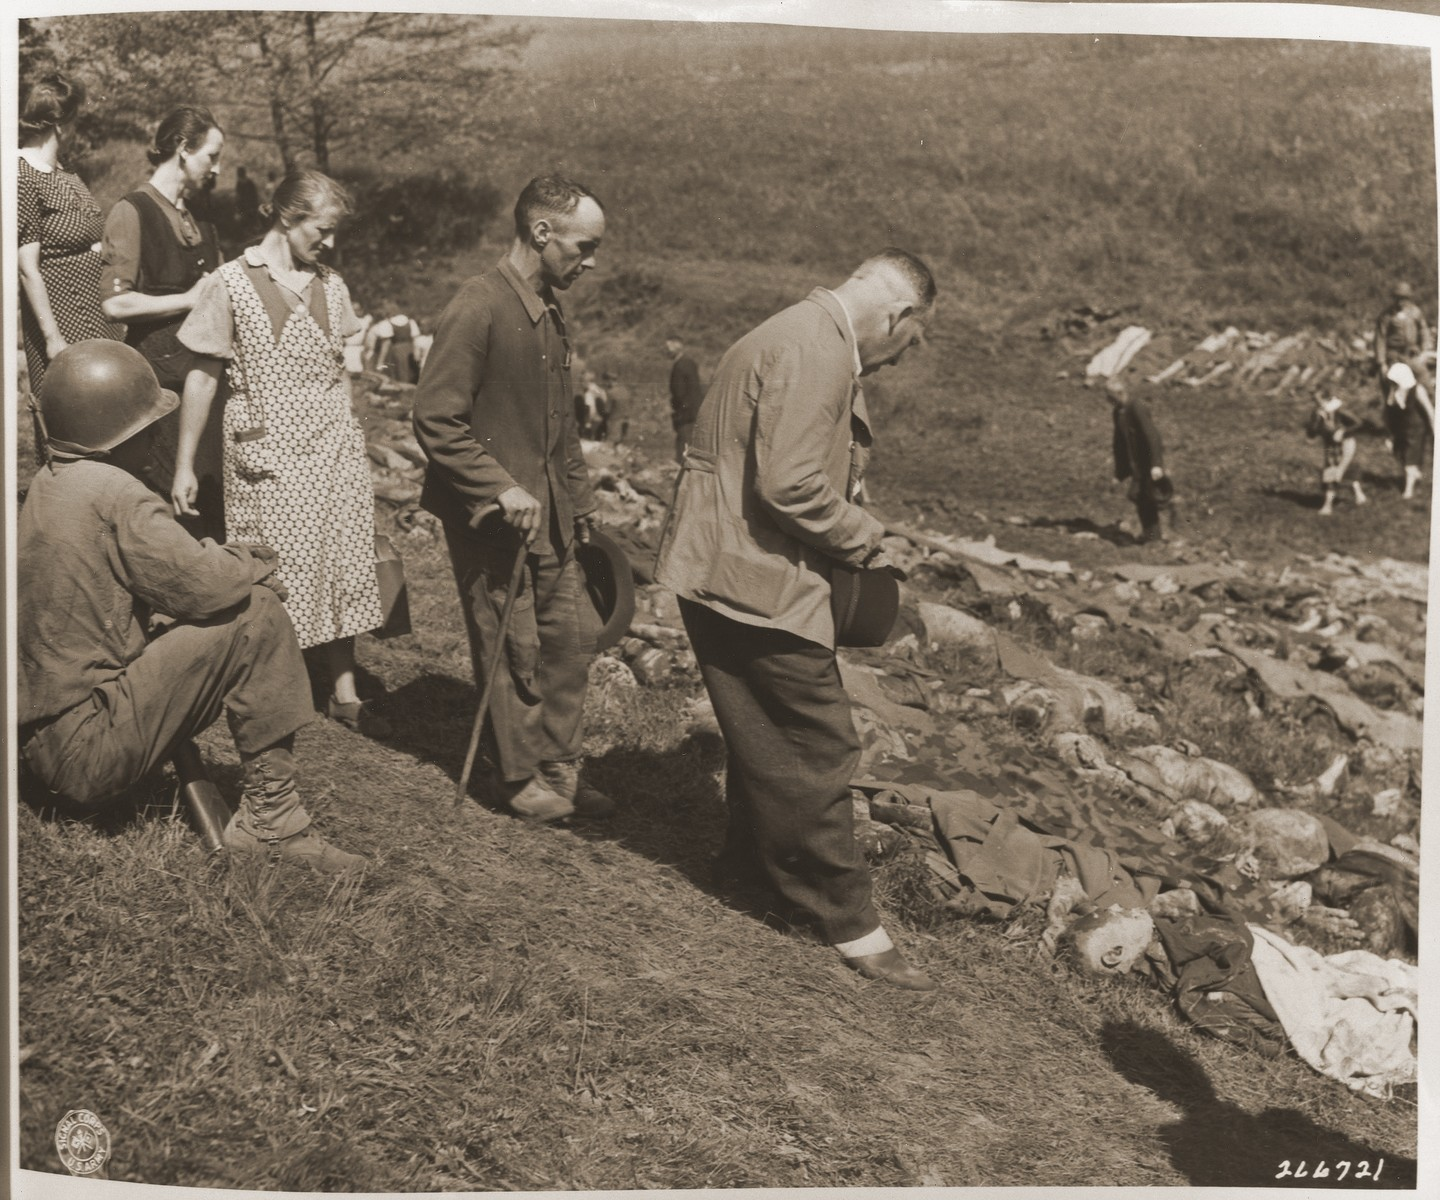 Under the supervision of American soldiers, German civilians from Nammering are forced to look at the corpses of prisoners exhumed from a mass grave near the town.